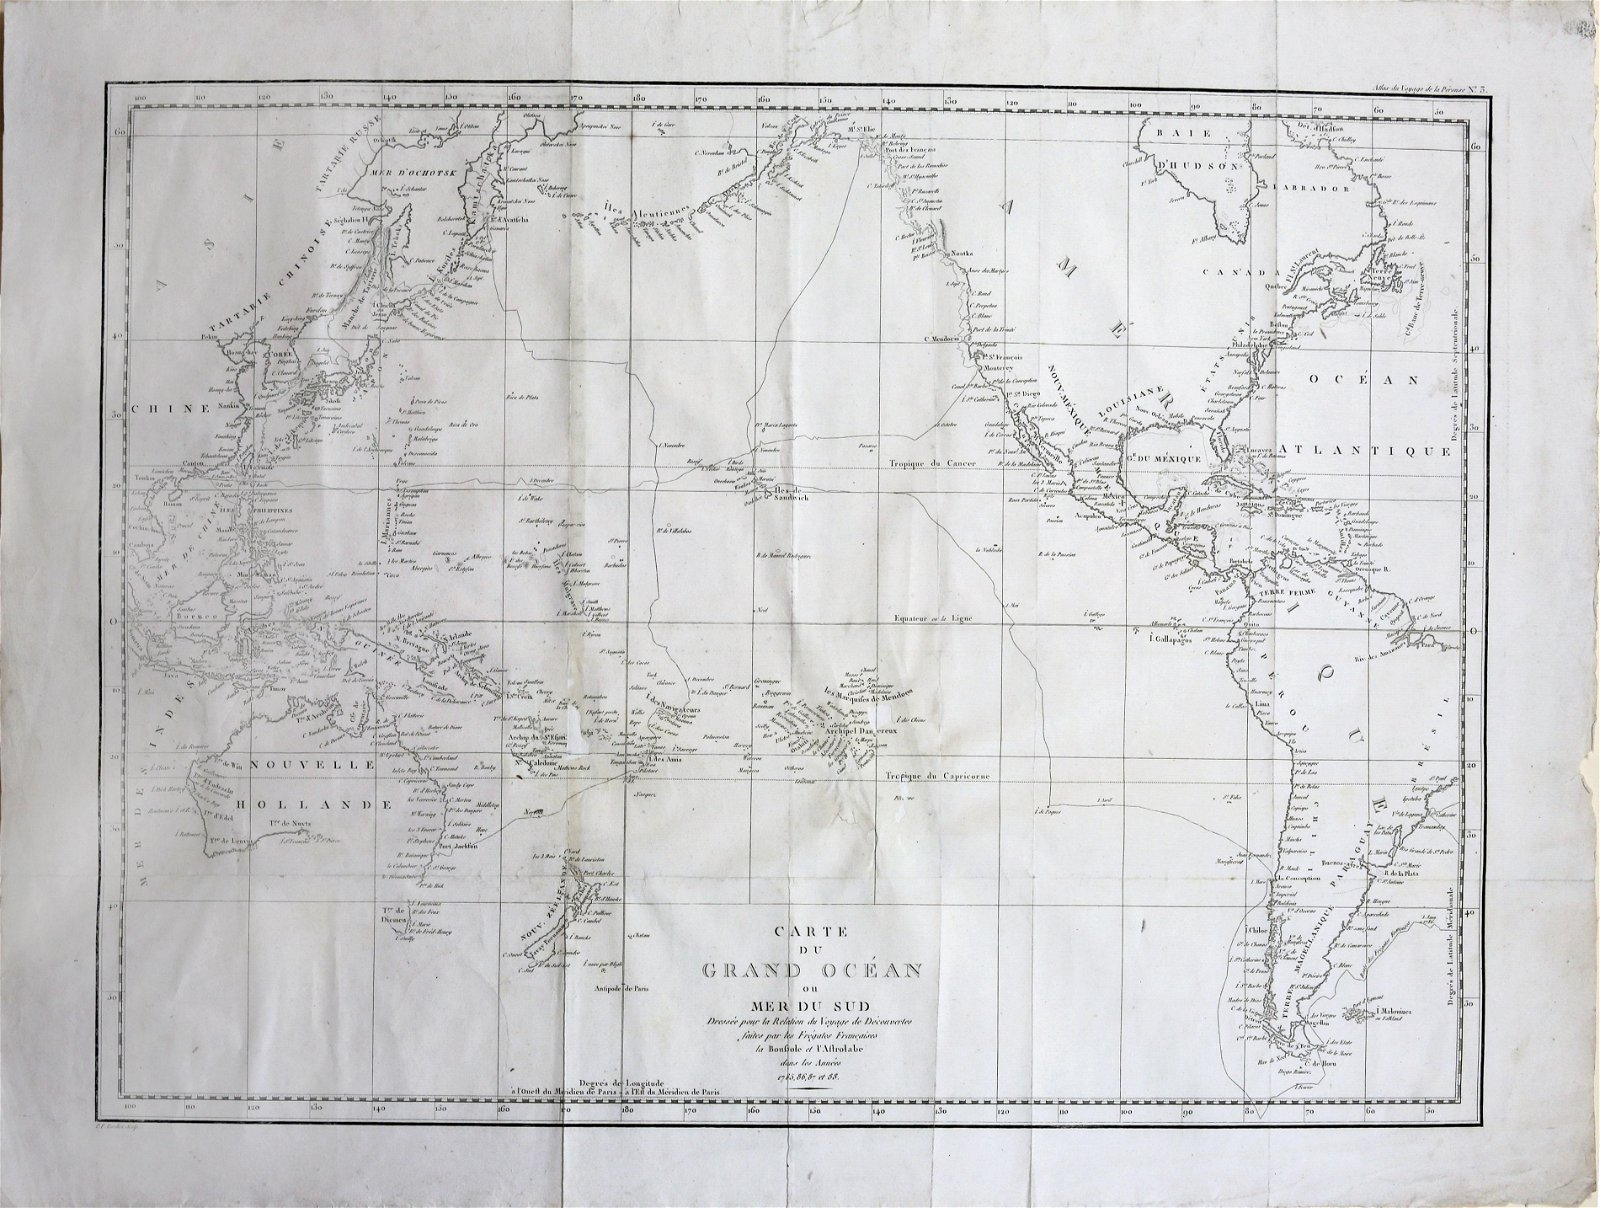 Perouse Map of the Pacific